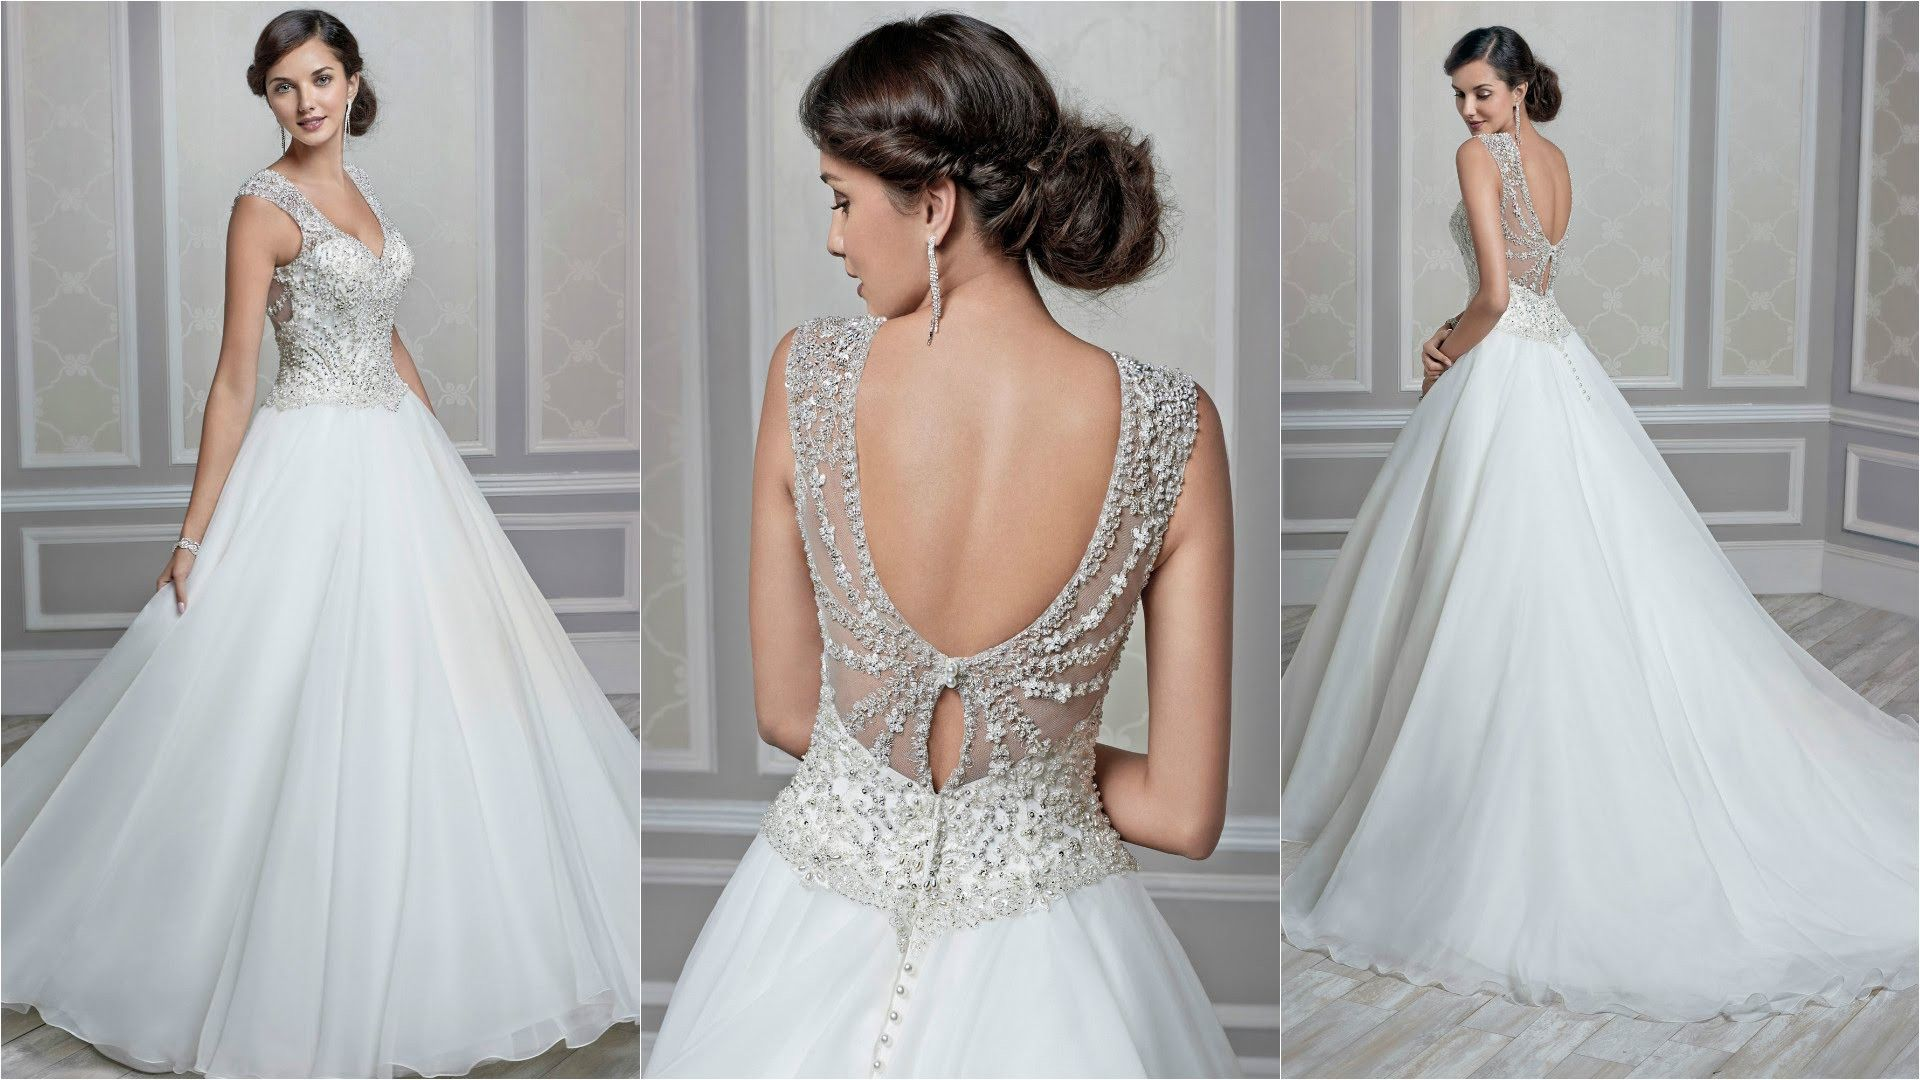 Tulle Wedding Dress (With Images)